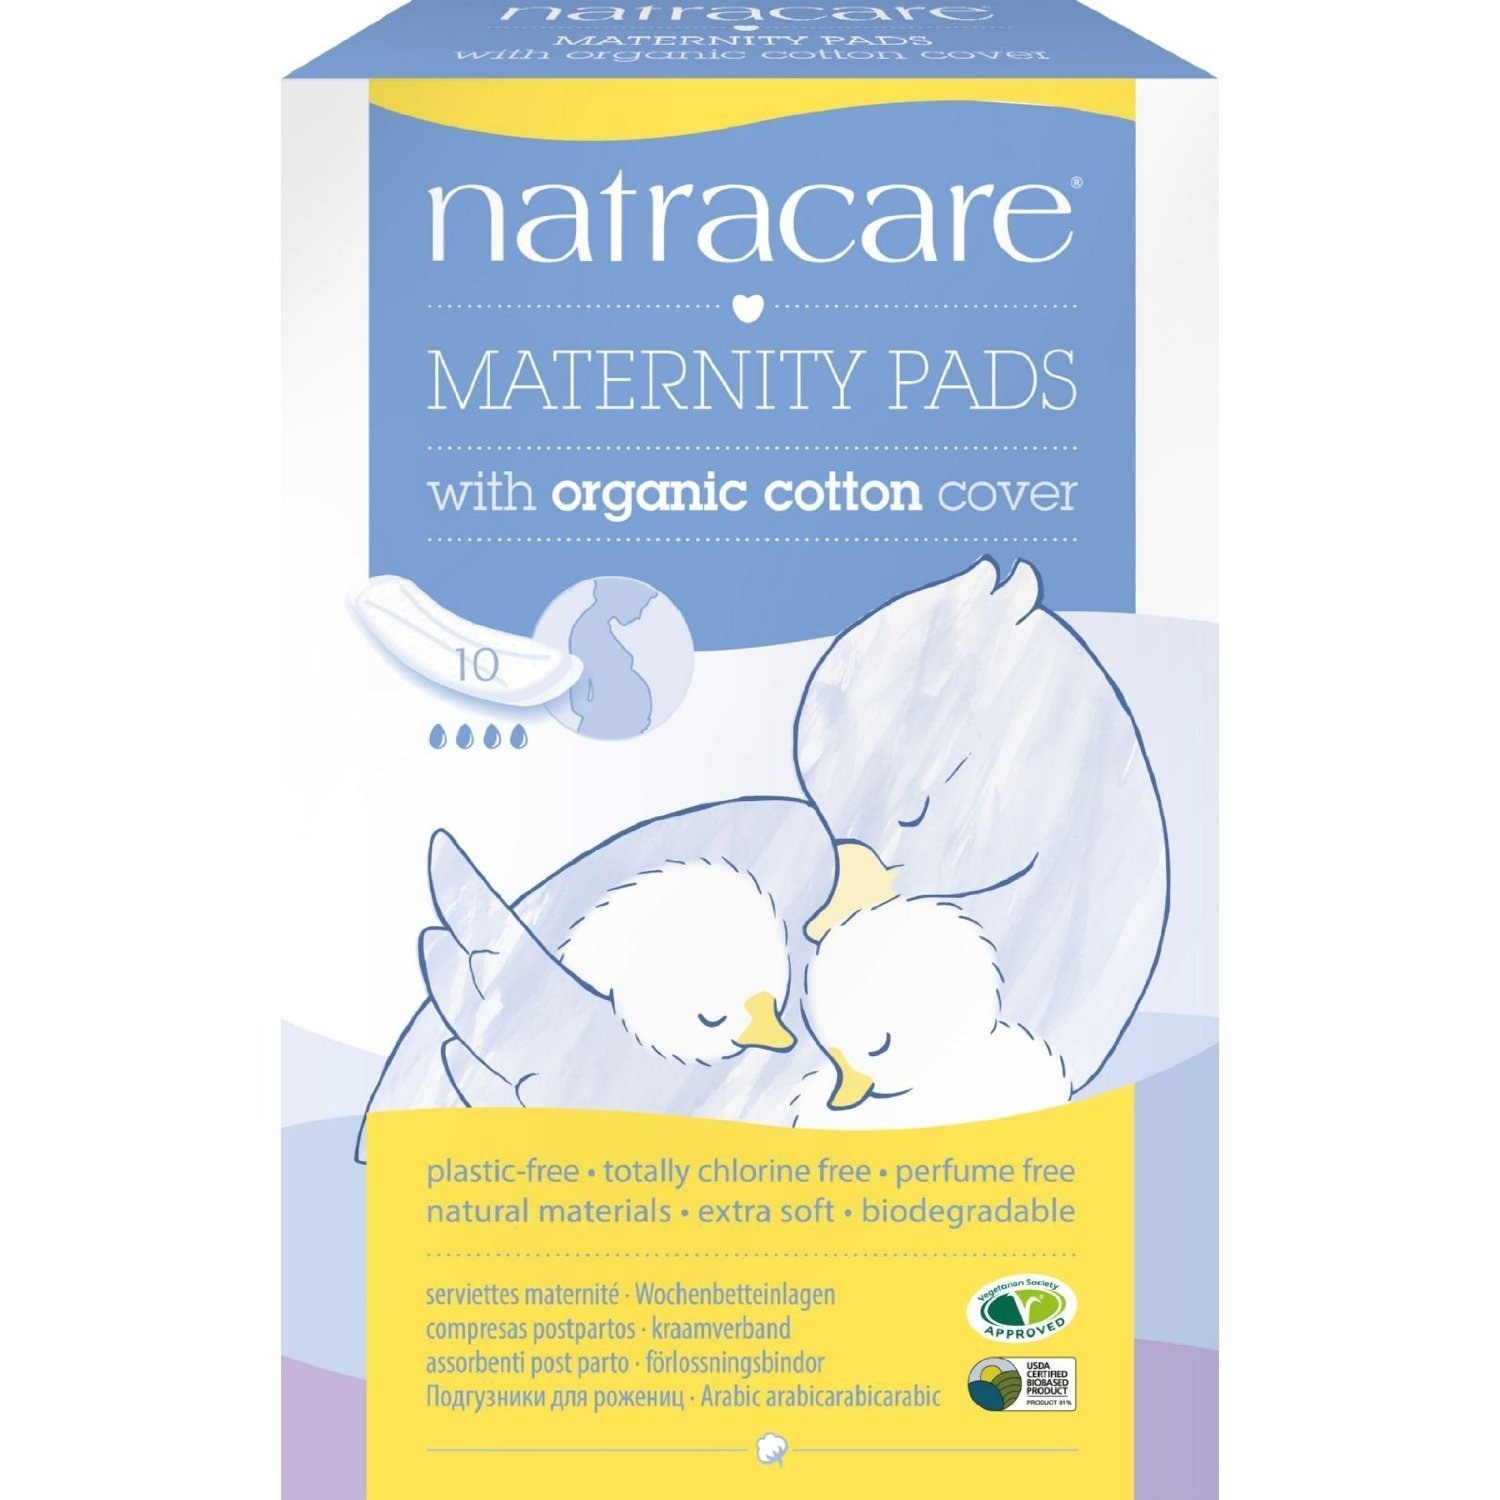 Natracare Maternity Pads - 6 per case by Natracare